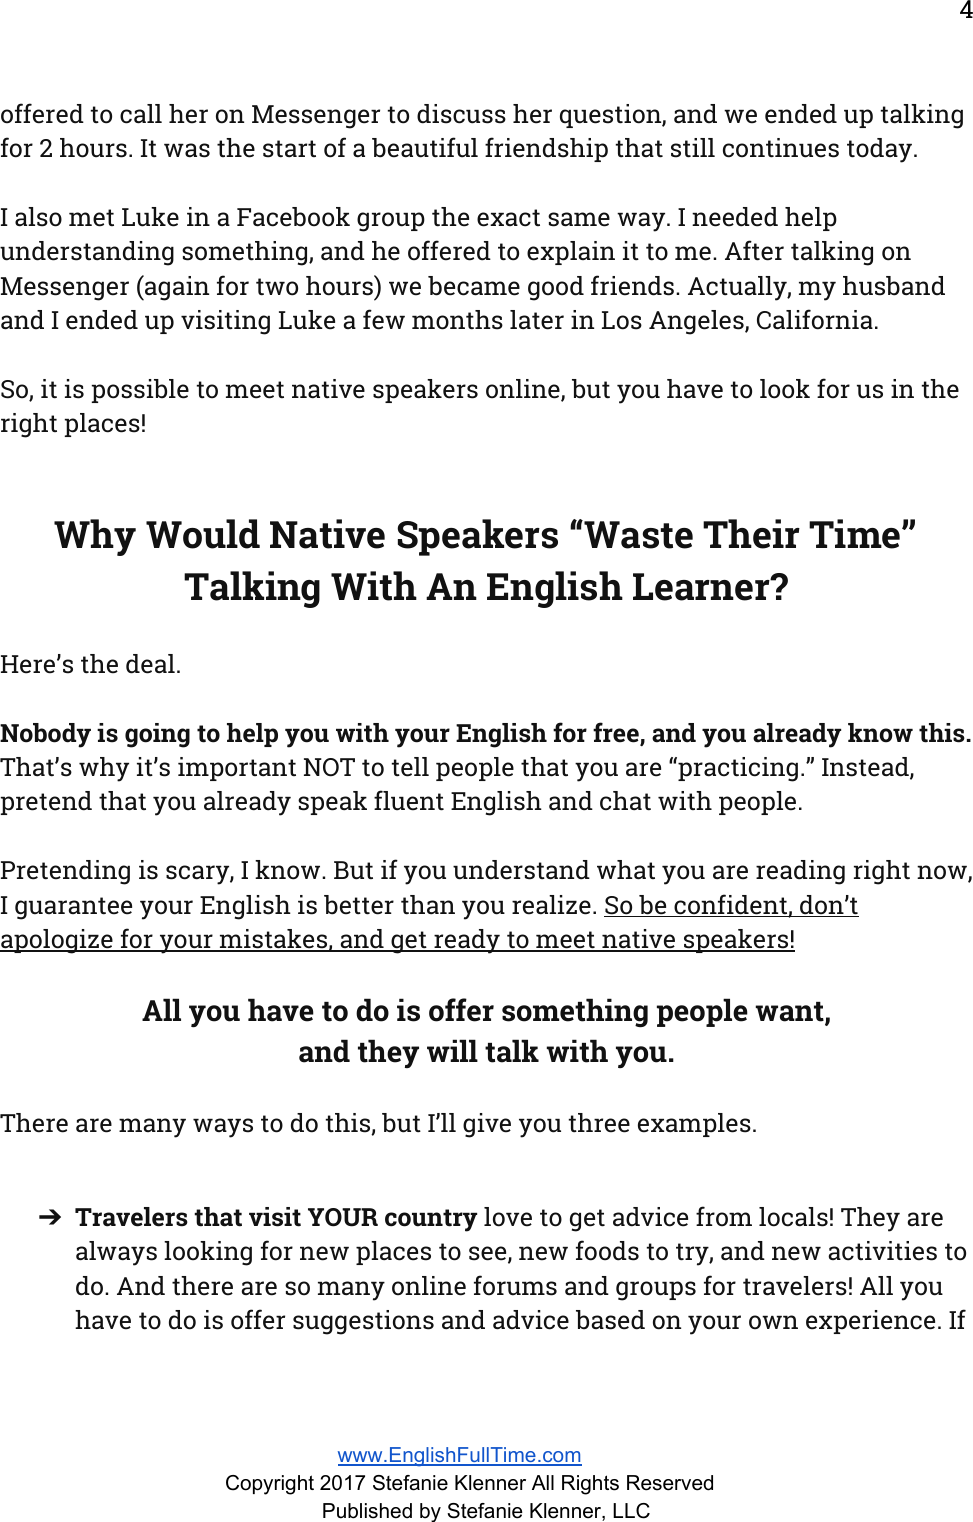 A+Simple+Guide+To+Practicing+English+With+Native+Speakers